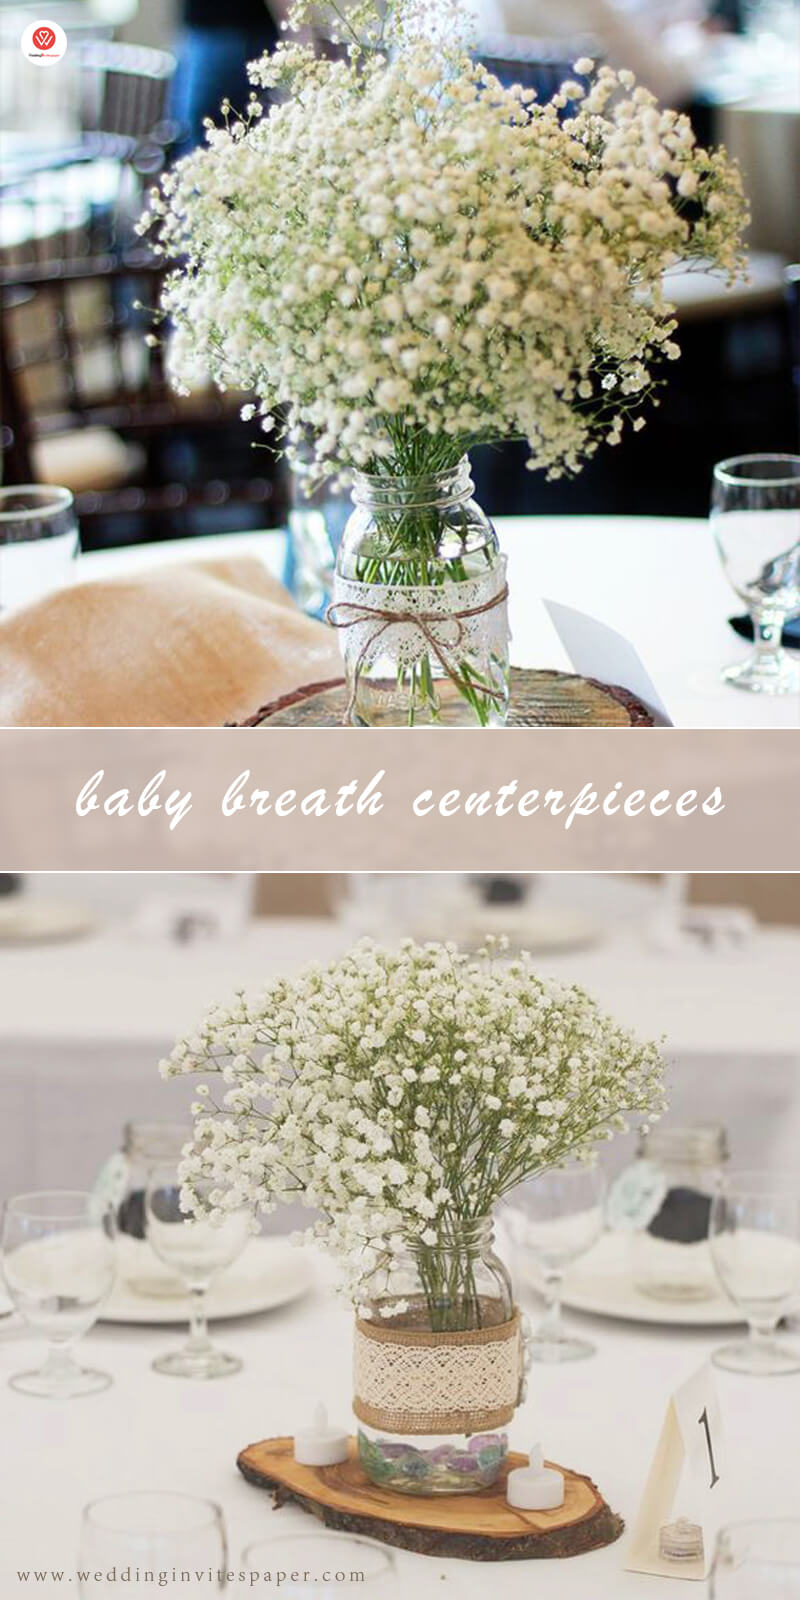 18 baby breath centerpieces.jpg